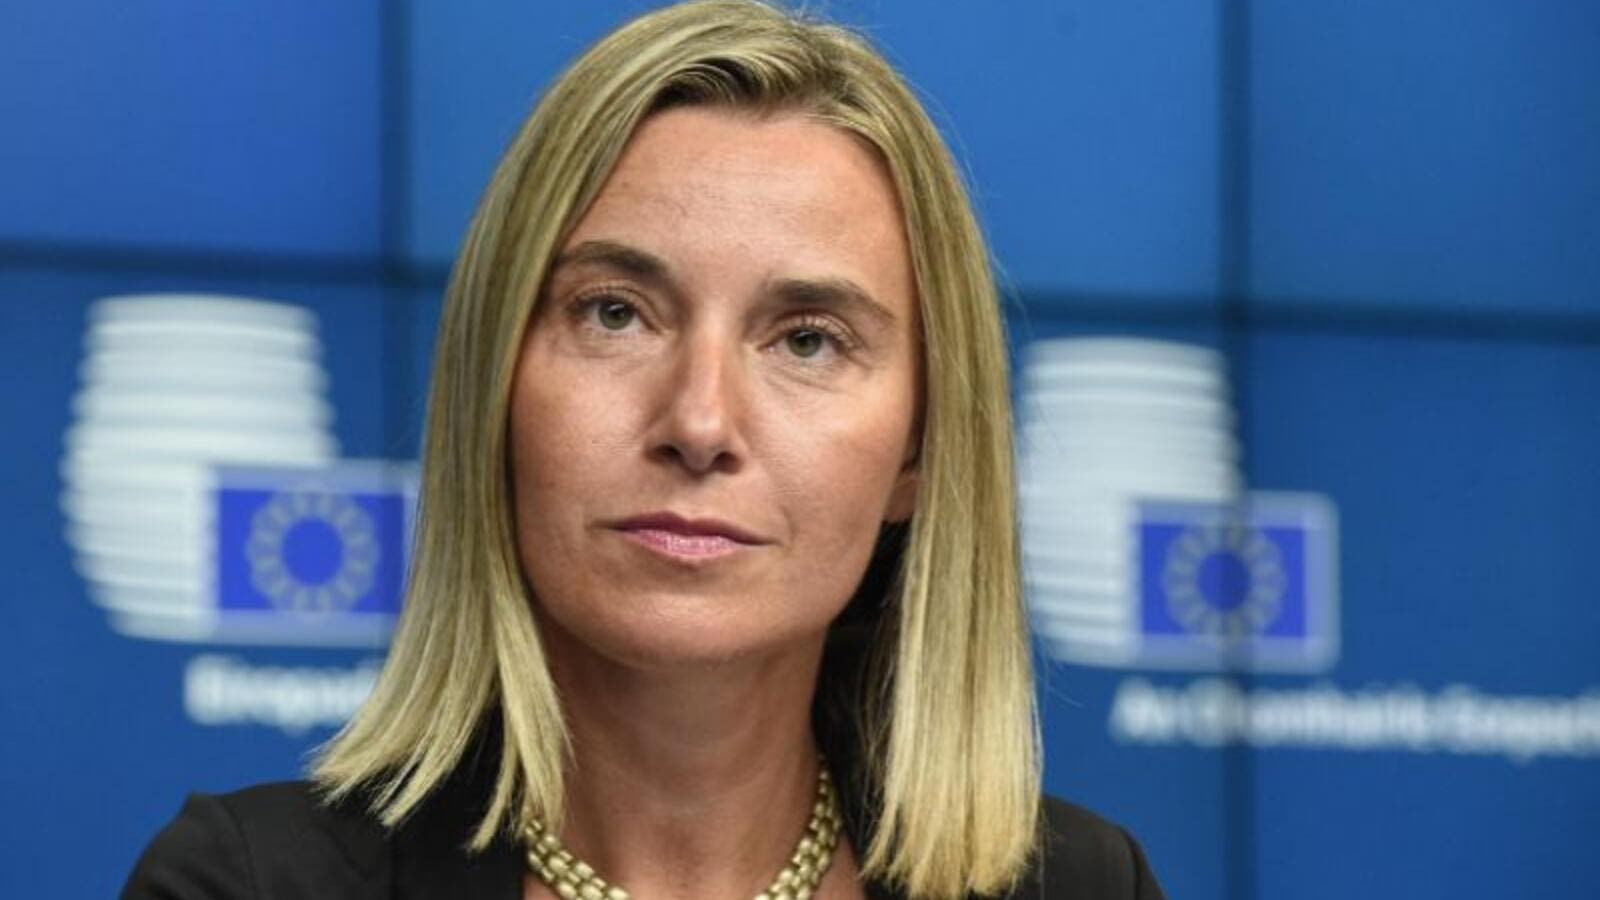 EU foreign policy chief Federica Mogherini. (AFP/File)